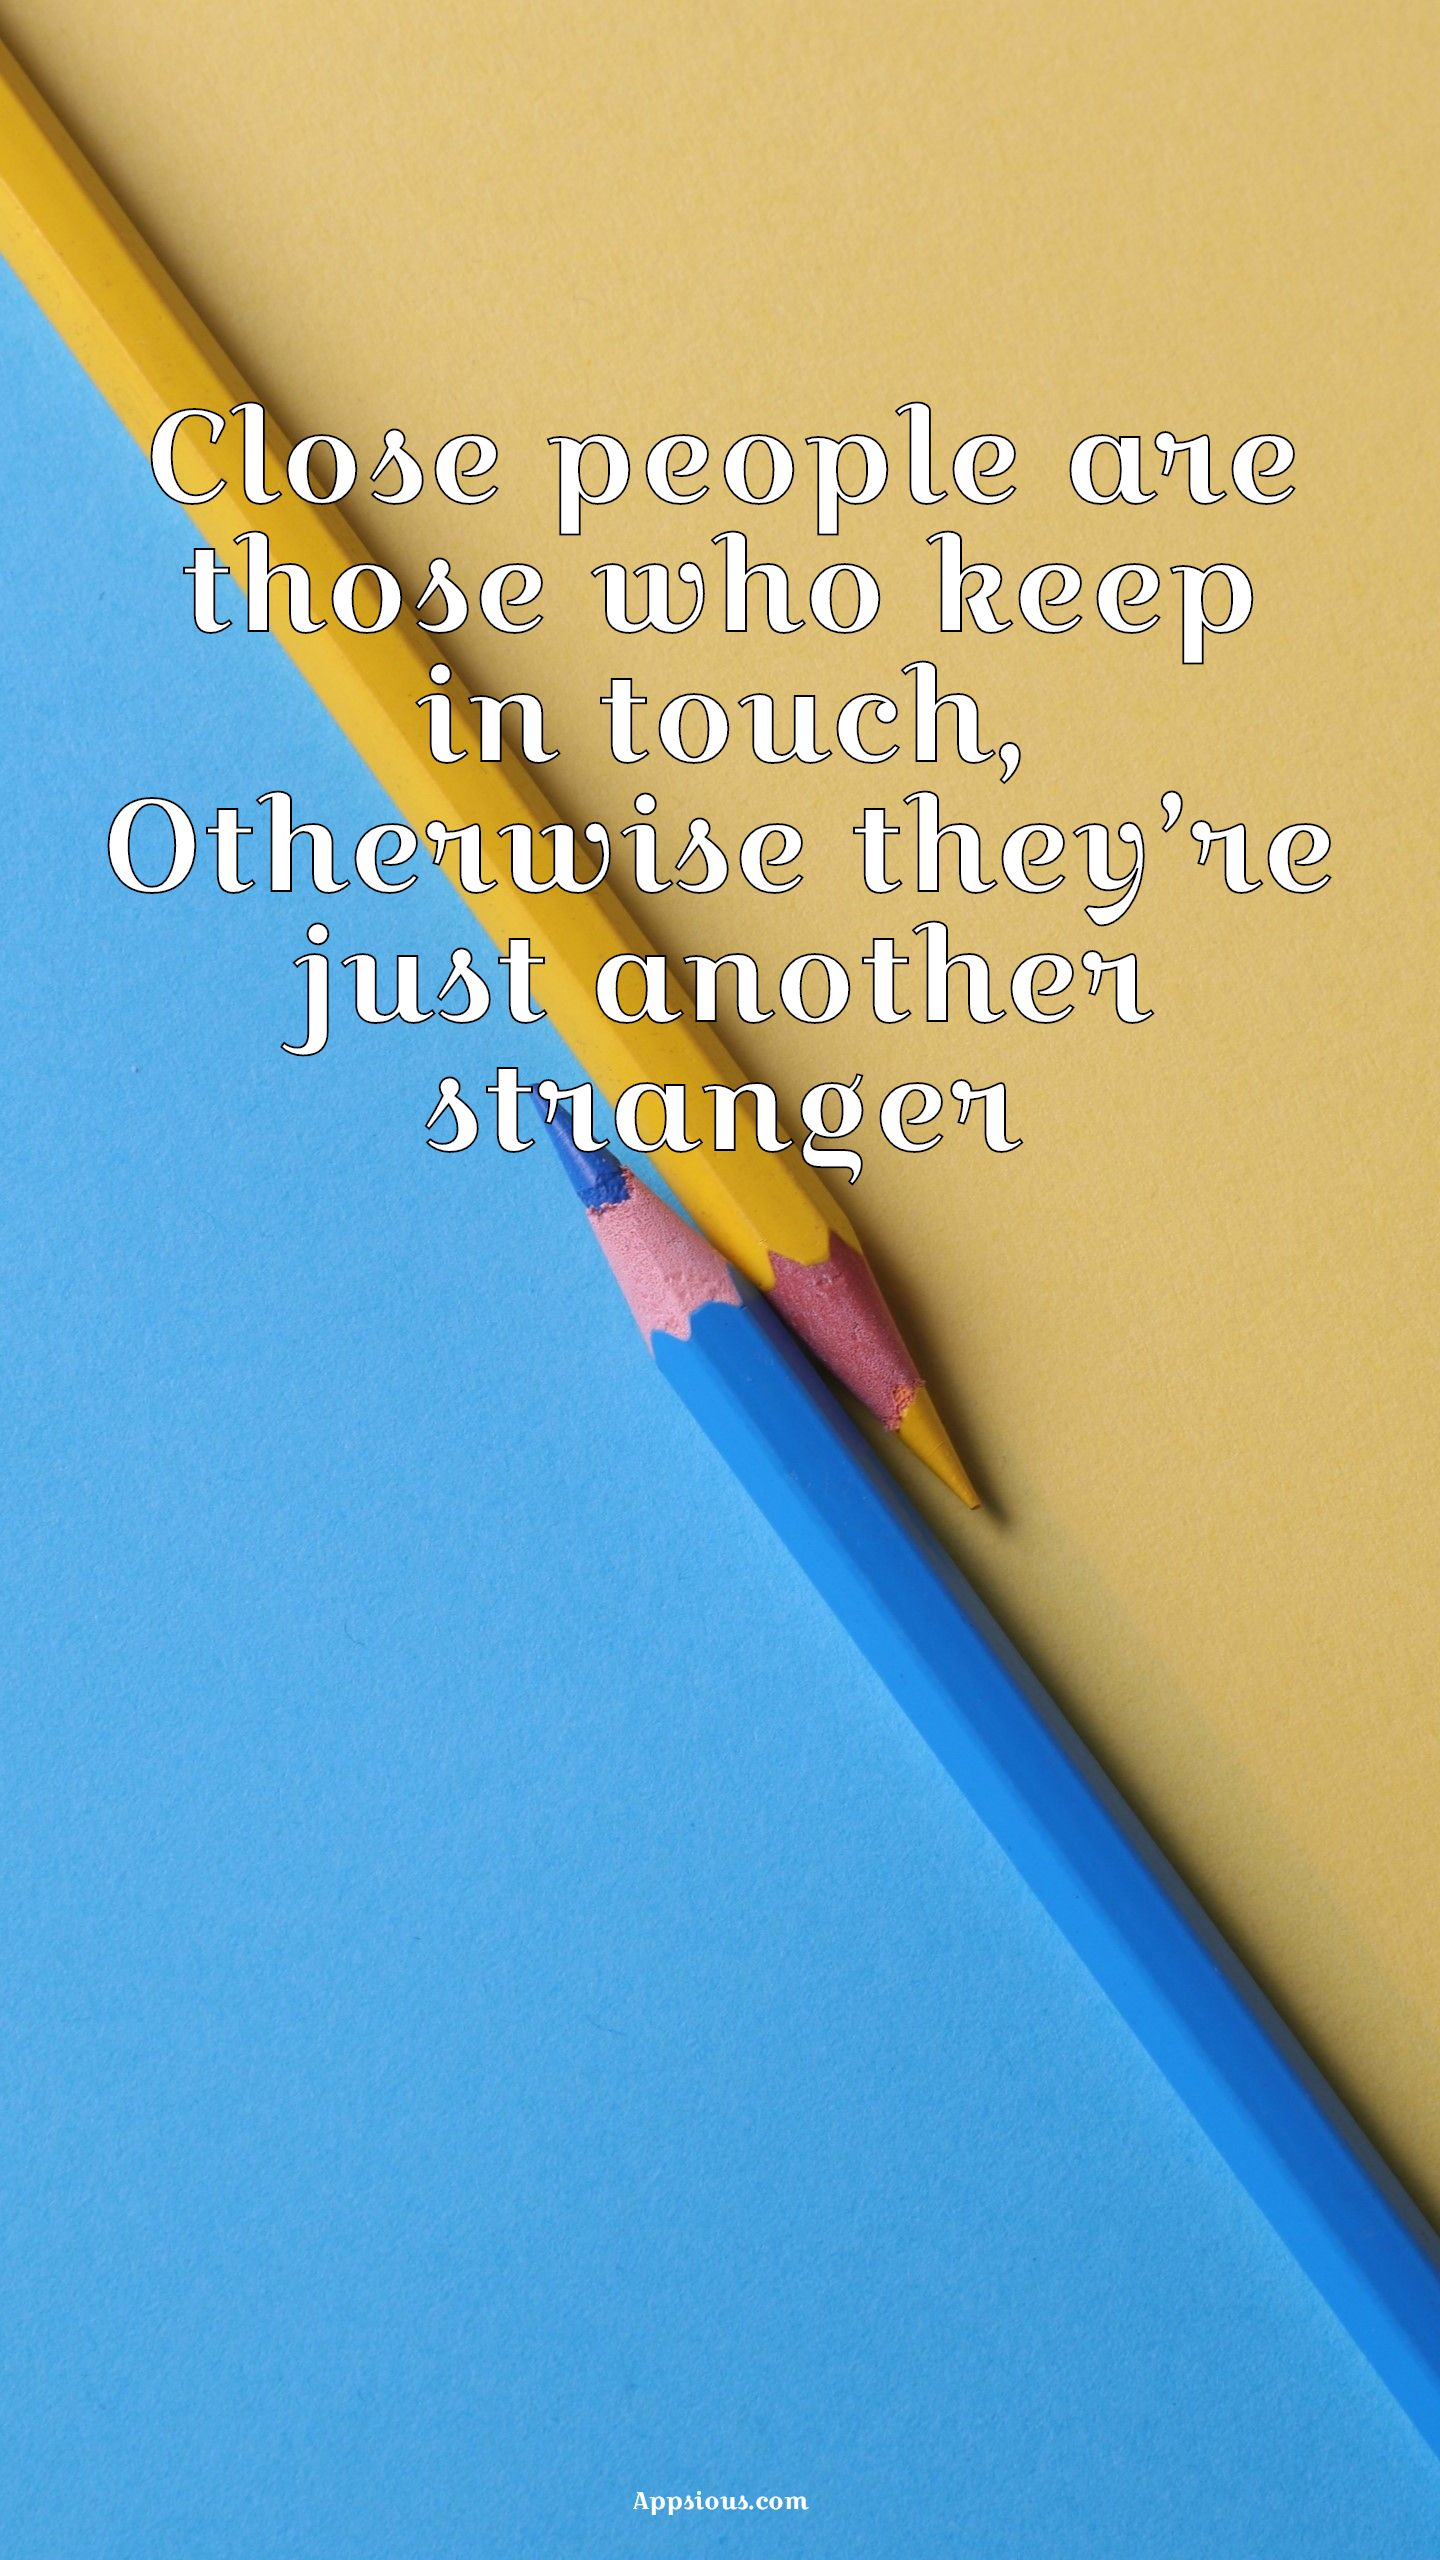 Close people are those who keep in touch, Otherwise they're just another stranger